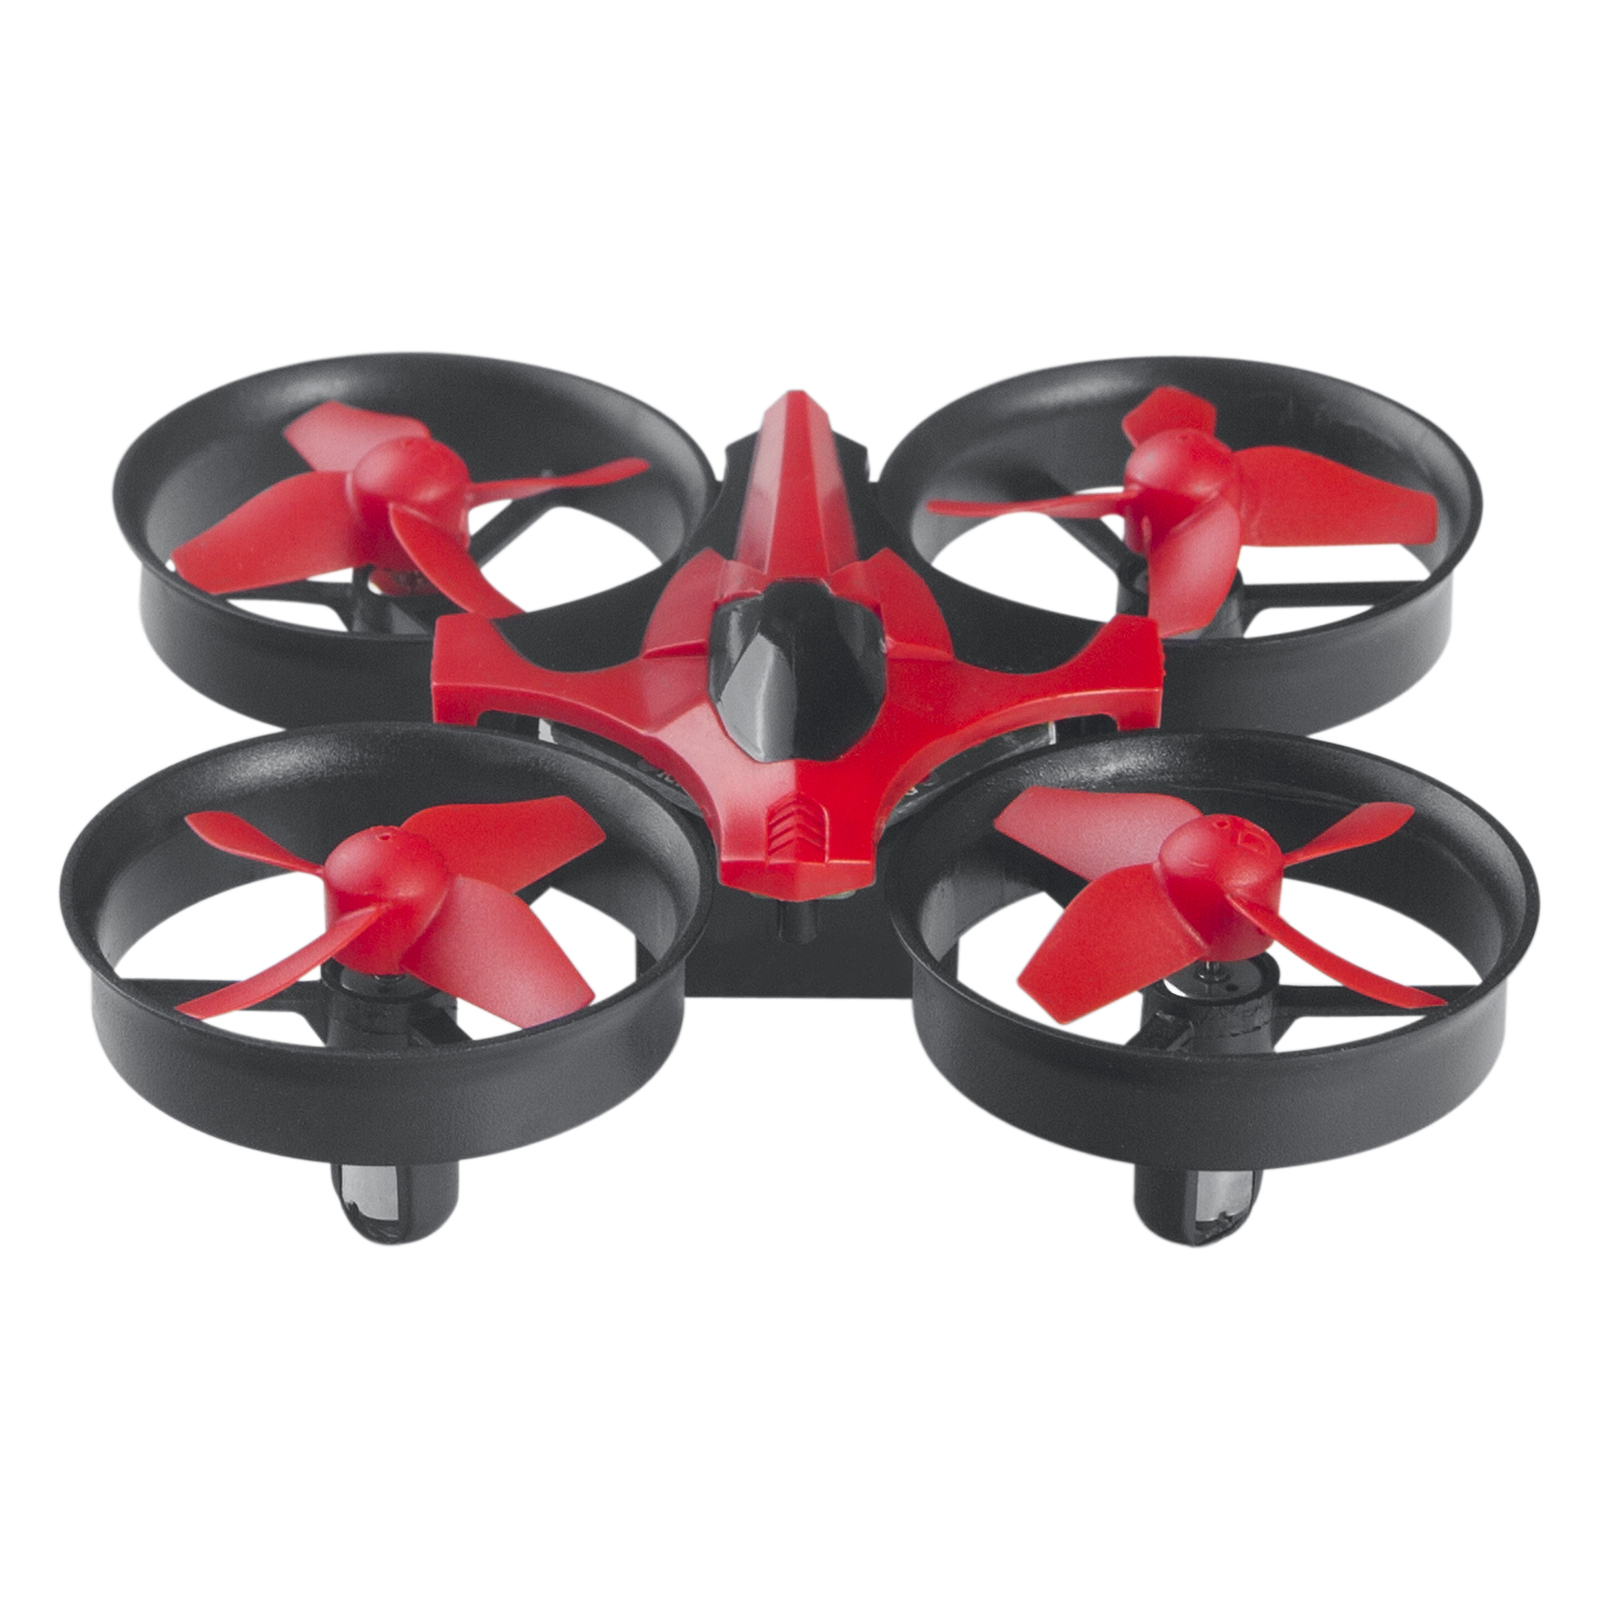 Aditif.co.in GTENG 2.4 Quadrocopter